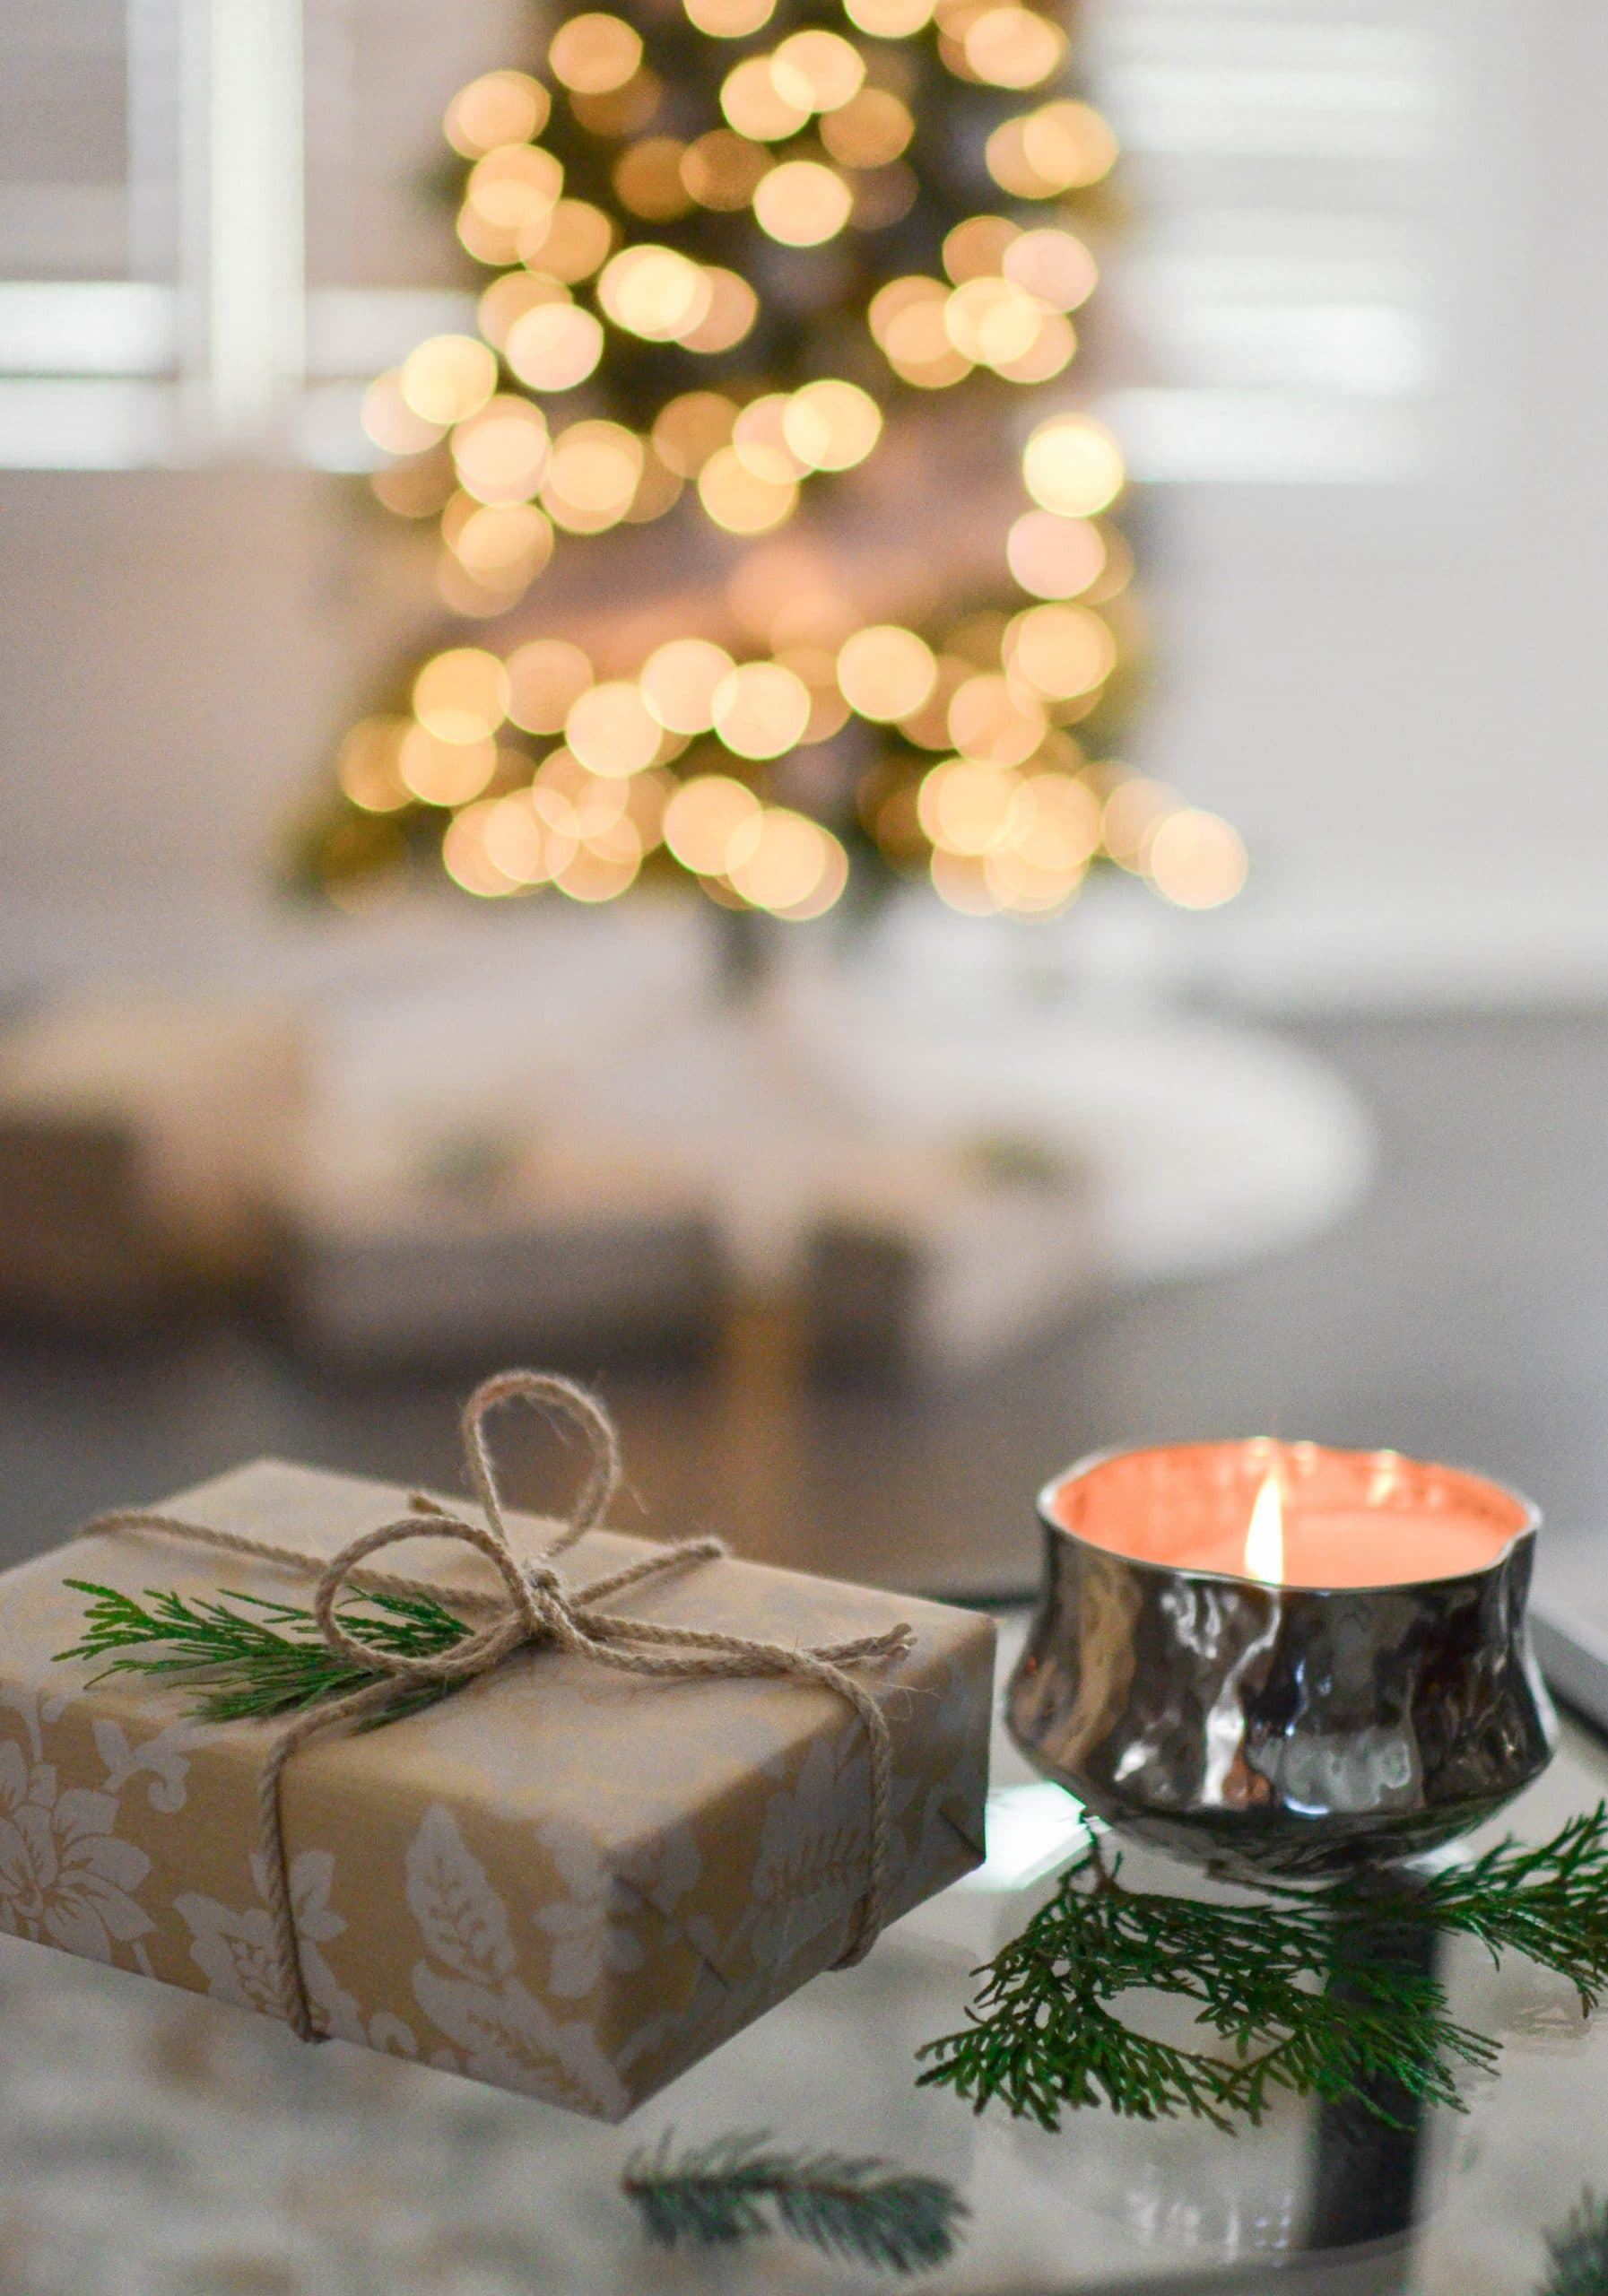 cannabis gift guide 2020 for weed lovers